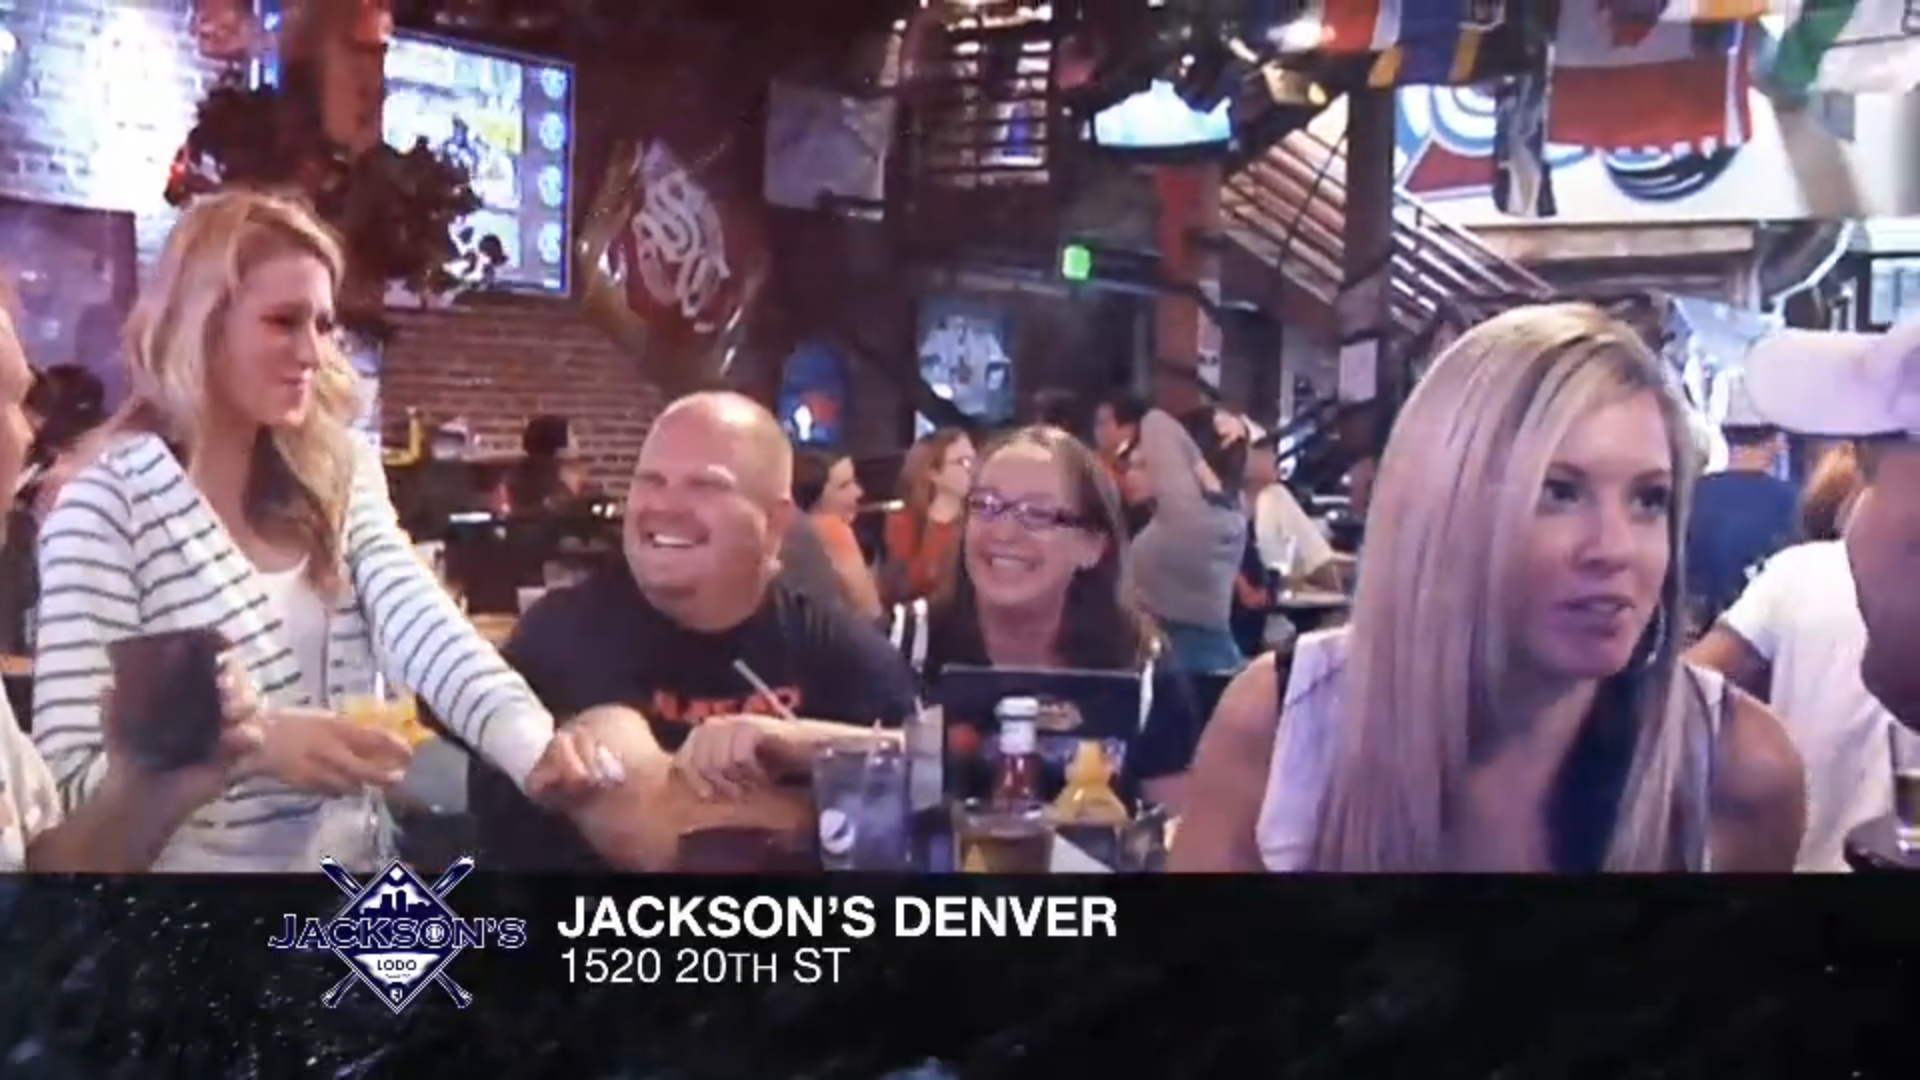 Avs-Jacksons-Watch-Party-021216.jpg